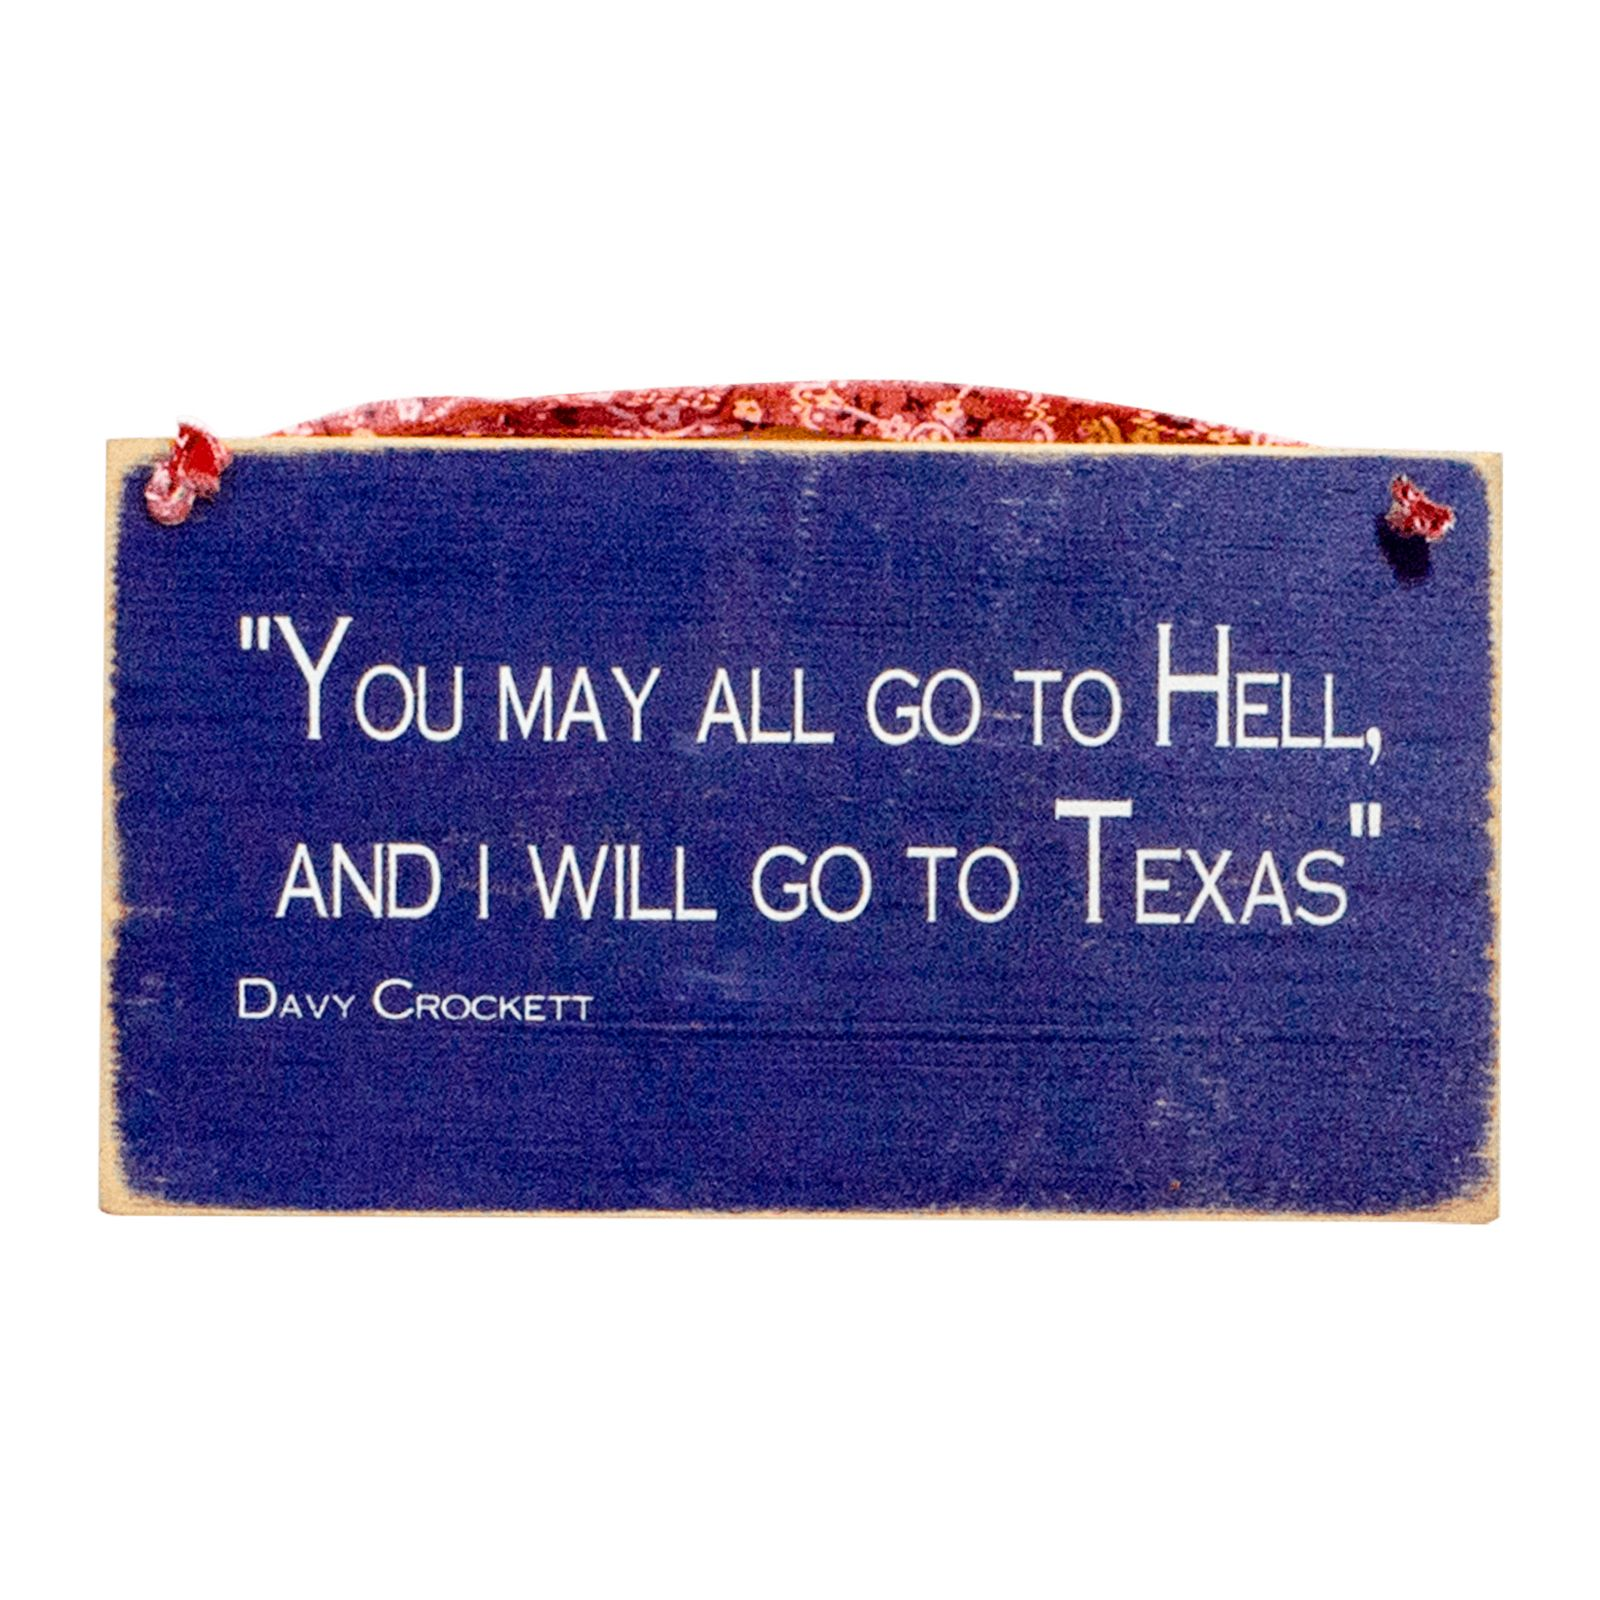 Davy Crockett Quote Wooden Wall Plaque